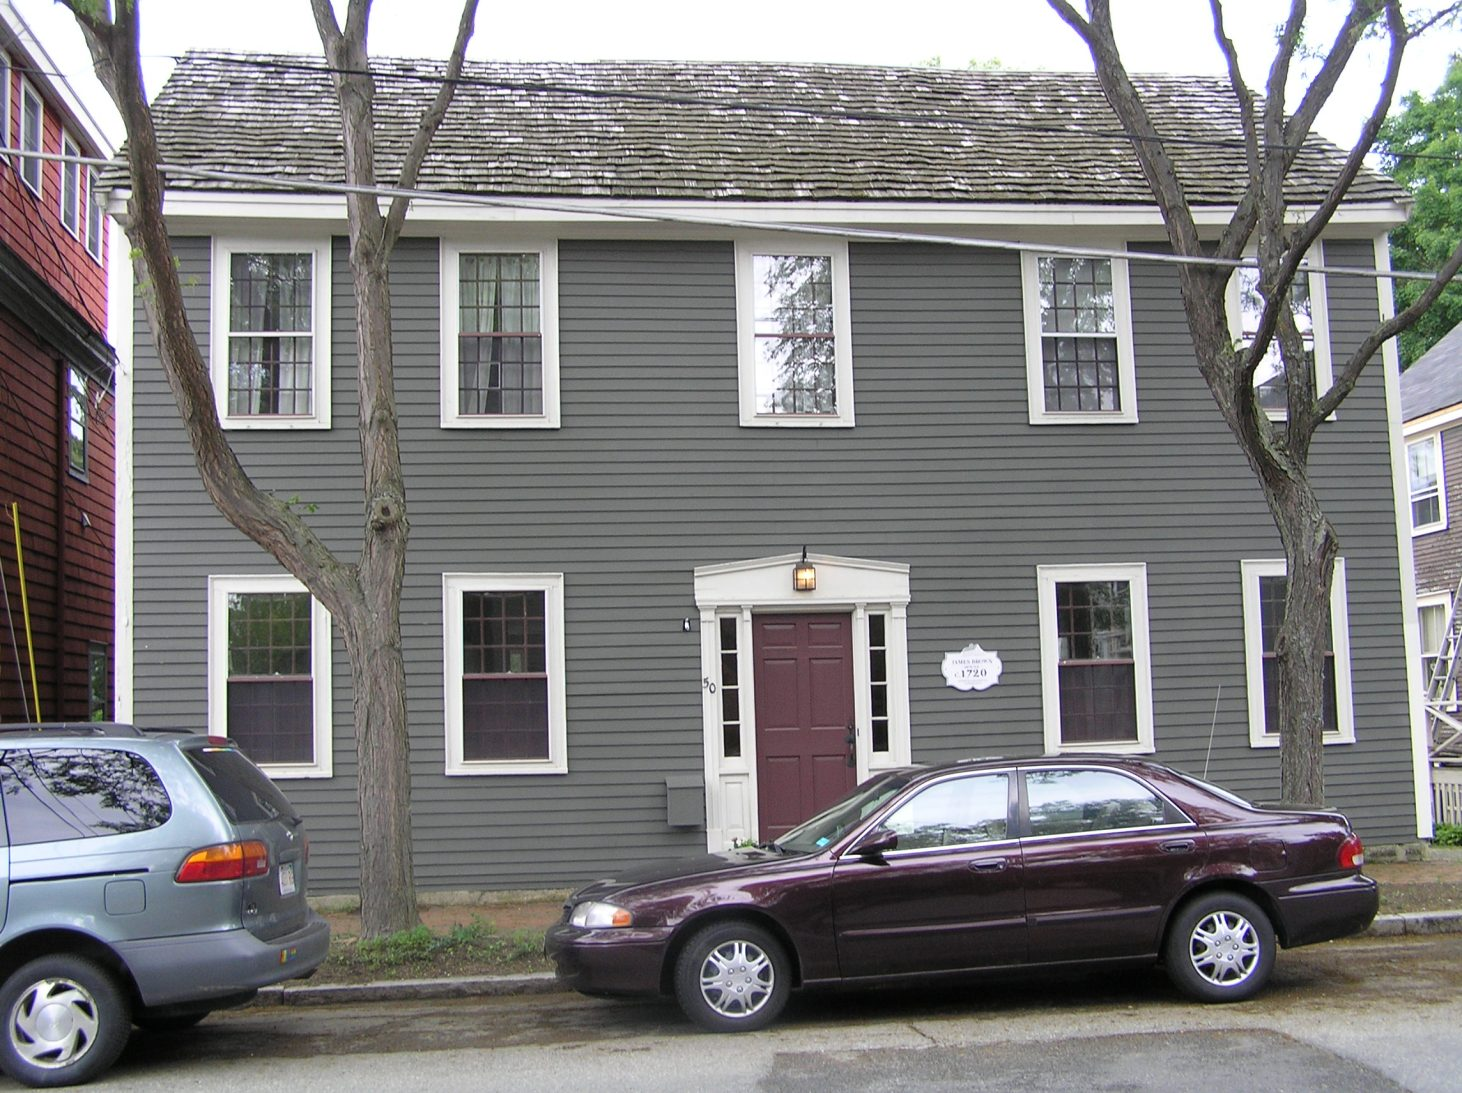 50 North Main Street, the James Brown house (1700 / 1721)